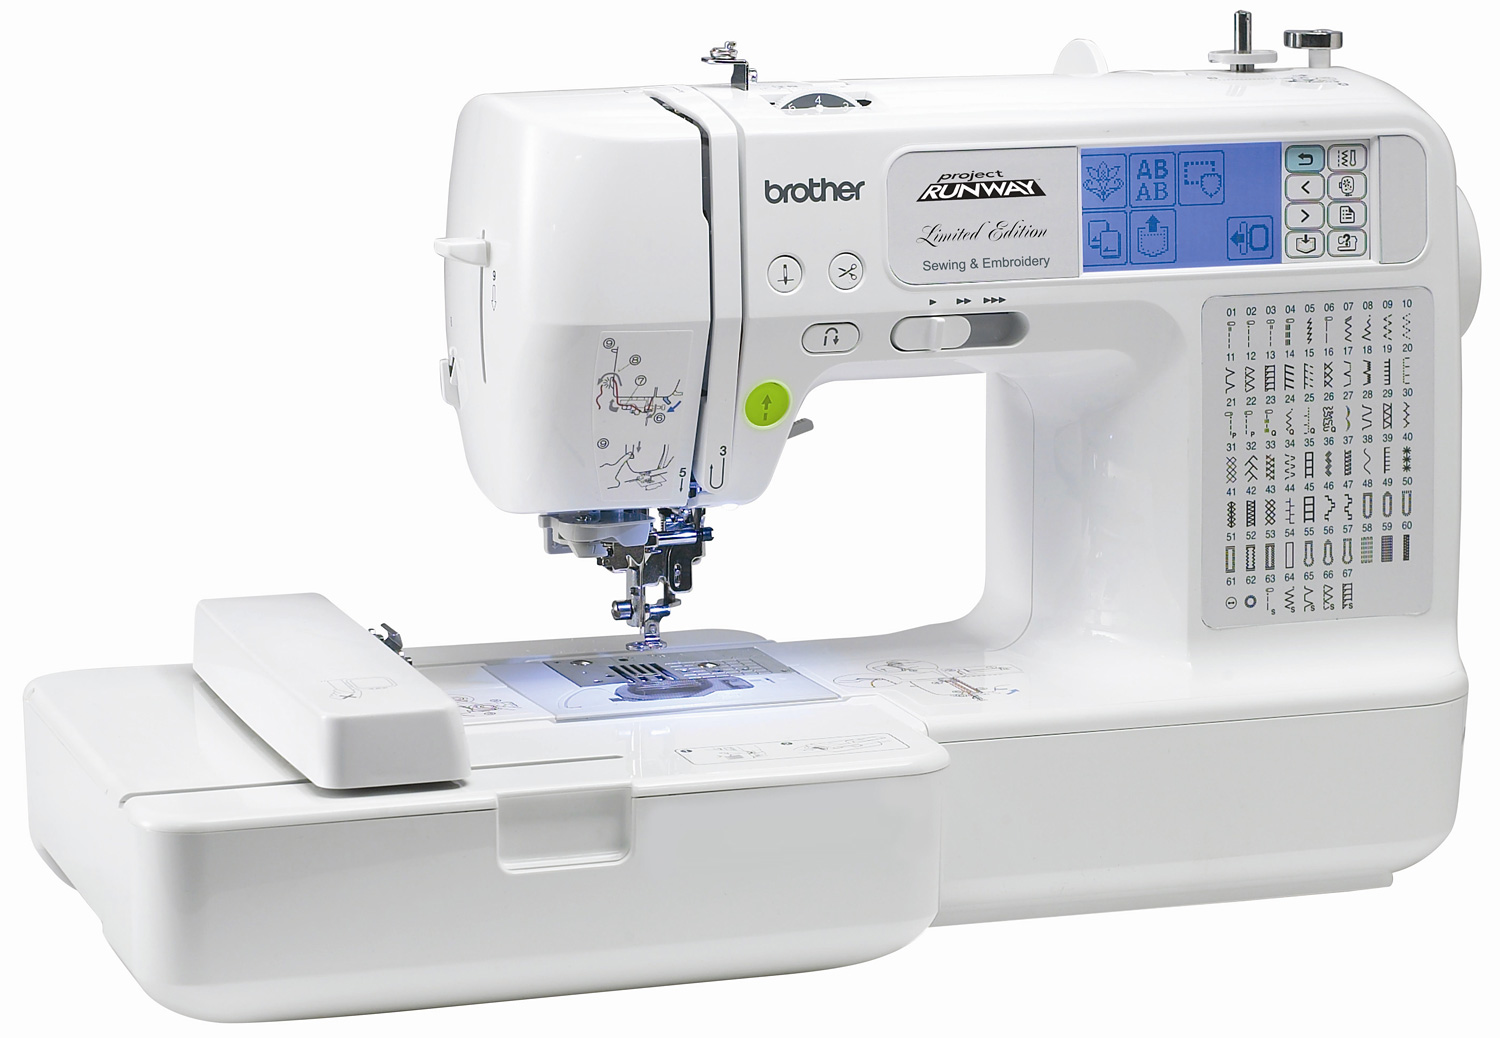 brother lb6770 prw project runway limited edition sewing embroidery machine. Black Bedroom Furniture Sets. Home Design Ideas